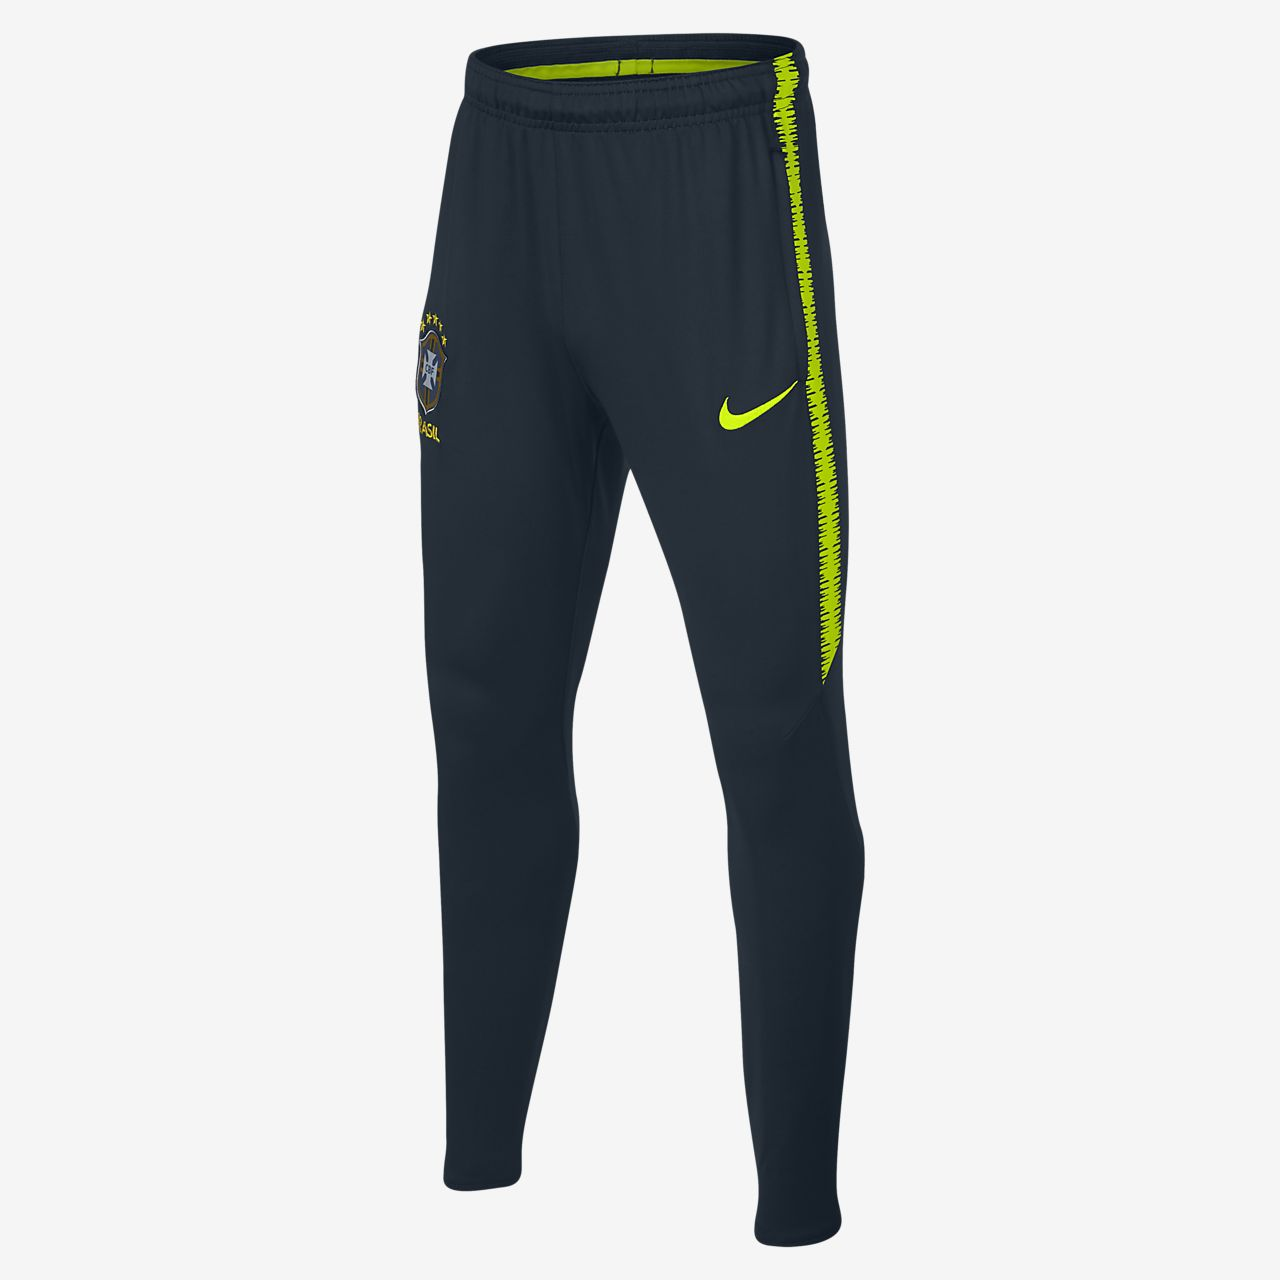 b1b5518e6 Brazil CBF Dri-FIT Squad Older Kids' Football Pants. Nike.com AU